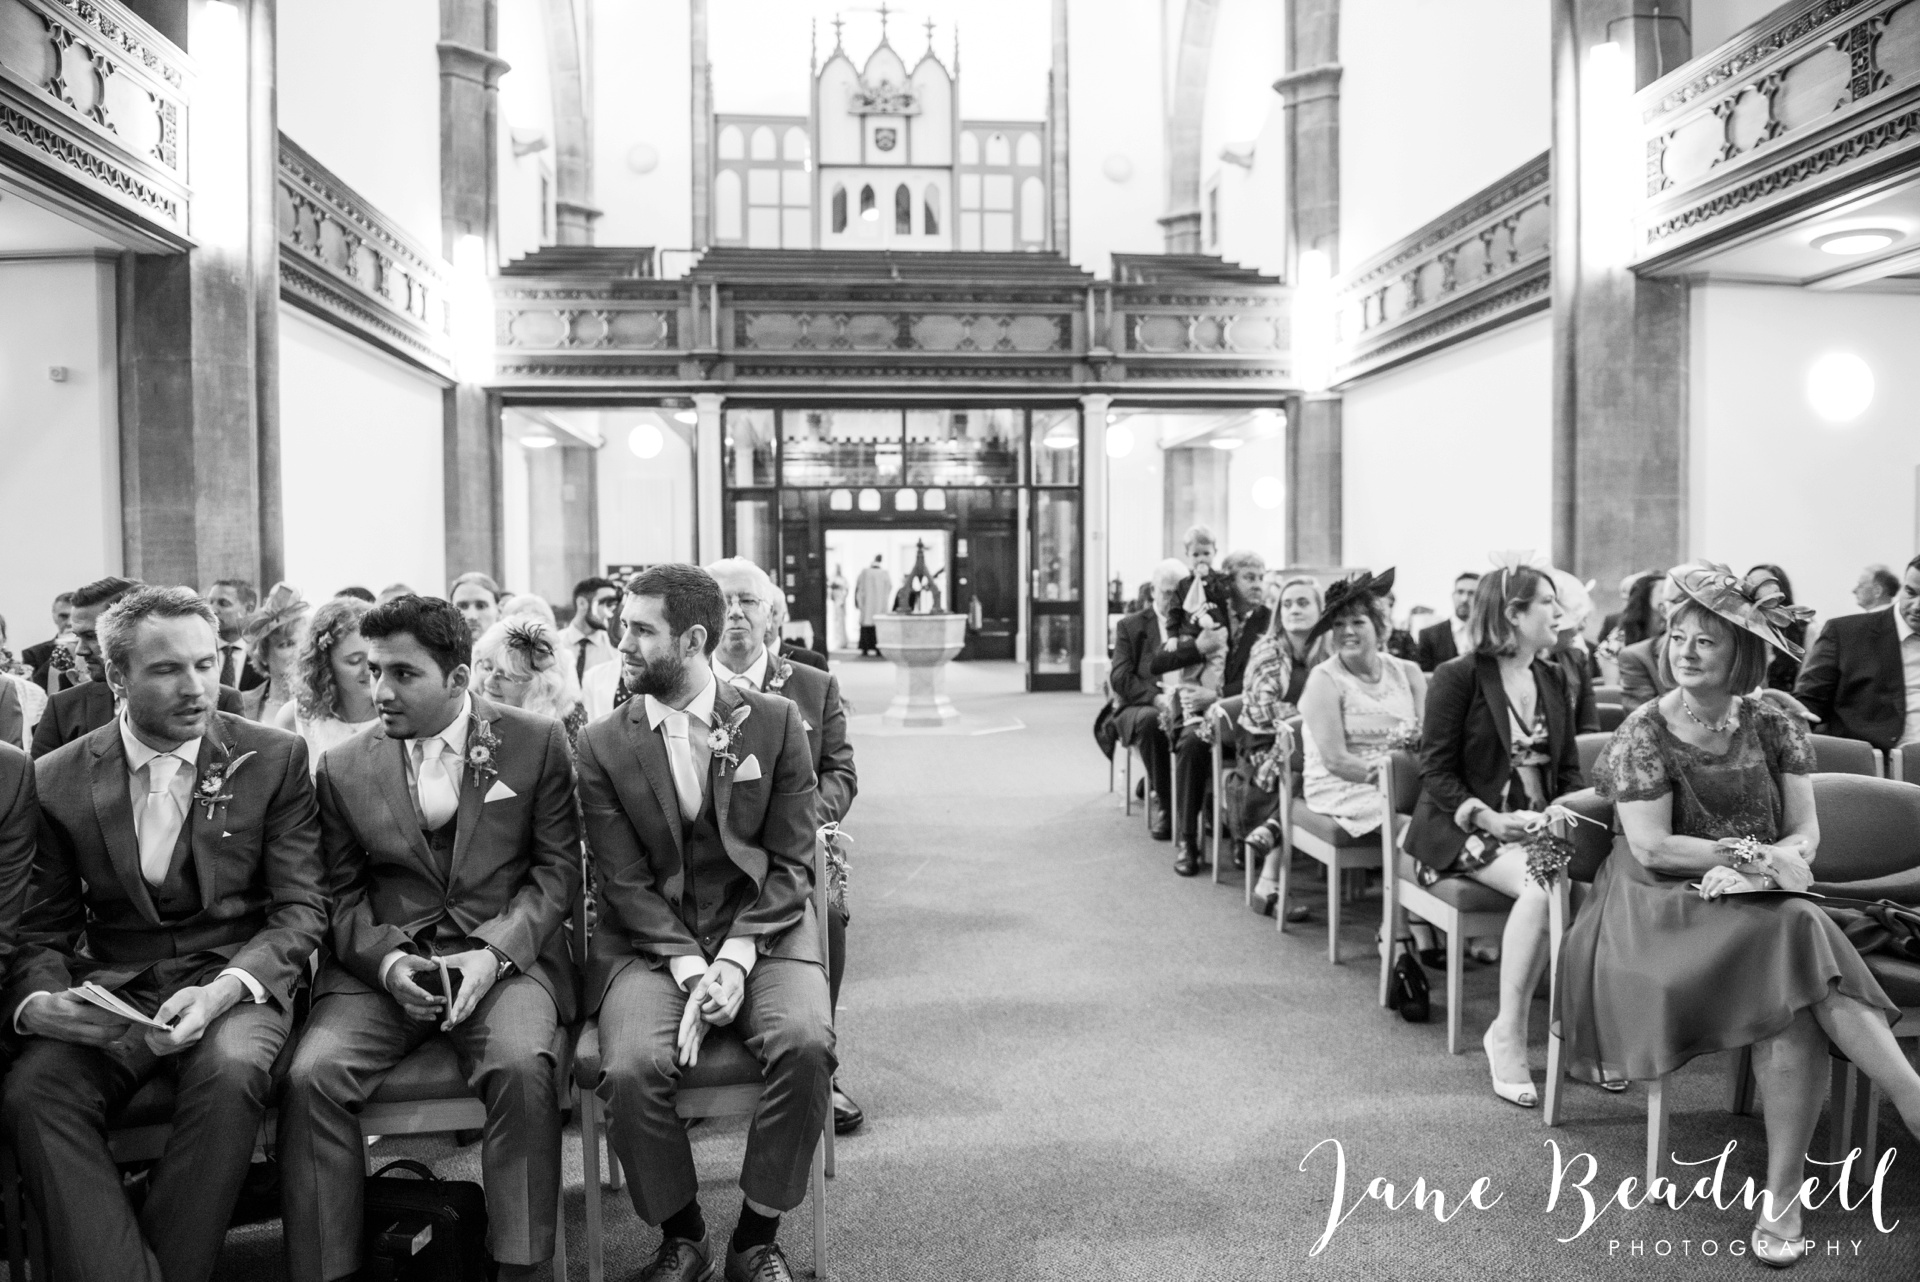 Yorkshire Wedding Photography the cheerful Chilli Barn Wedding by Jane Beadnell Photography_0058